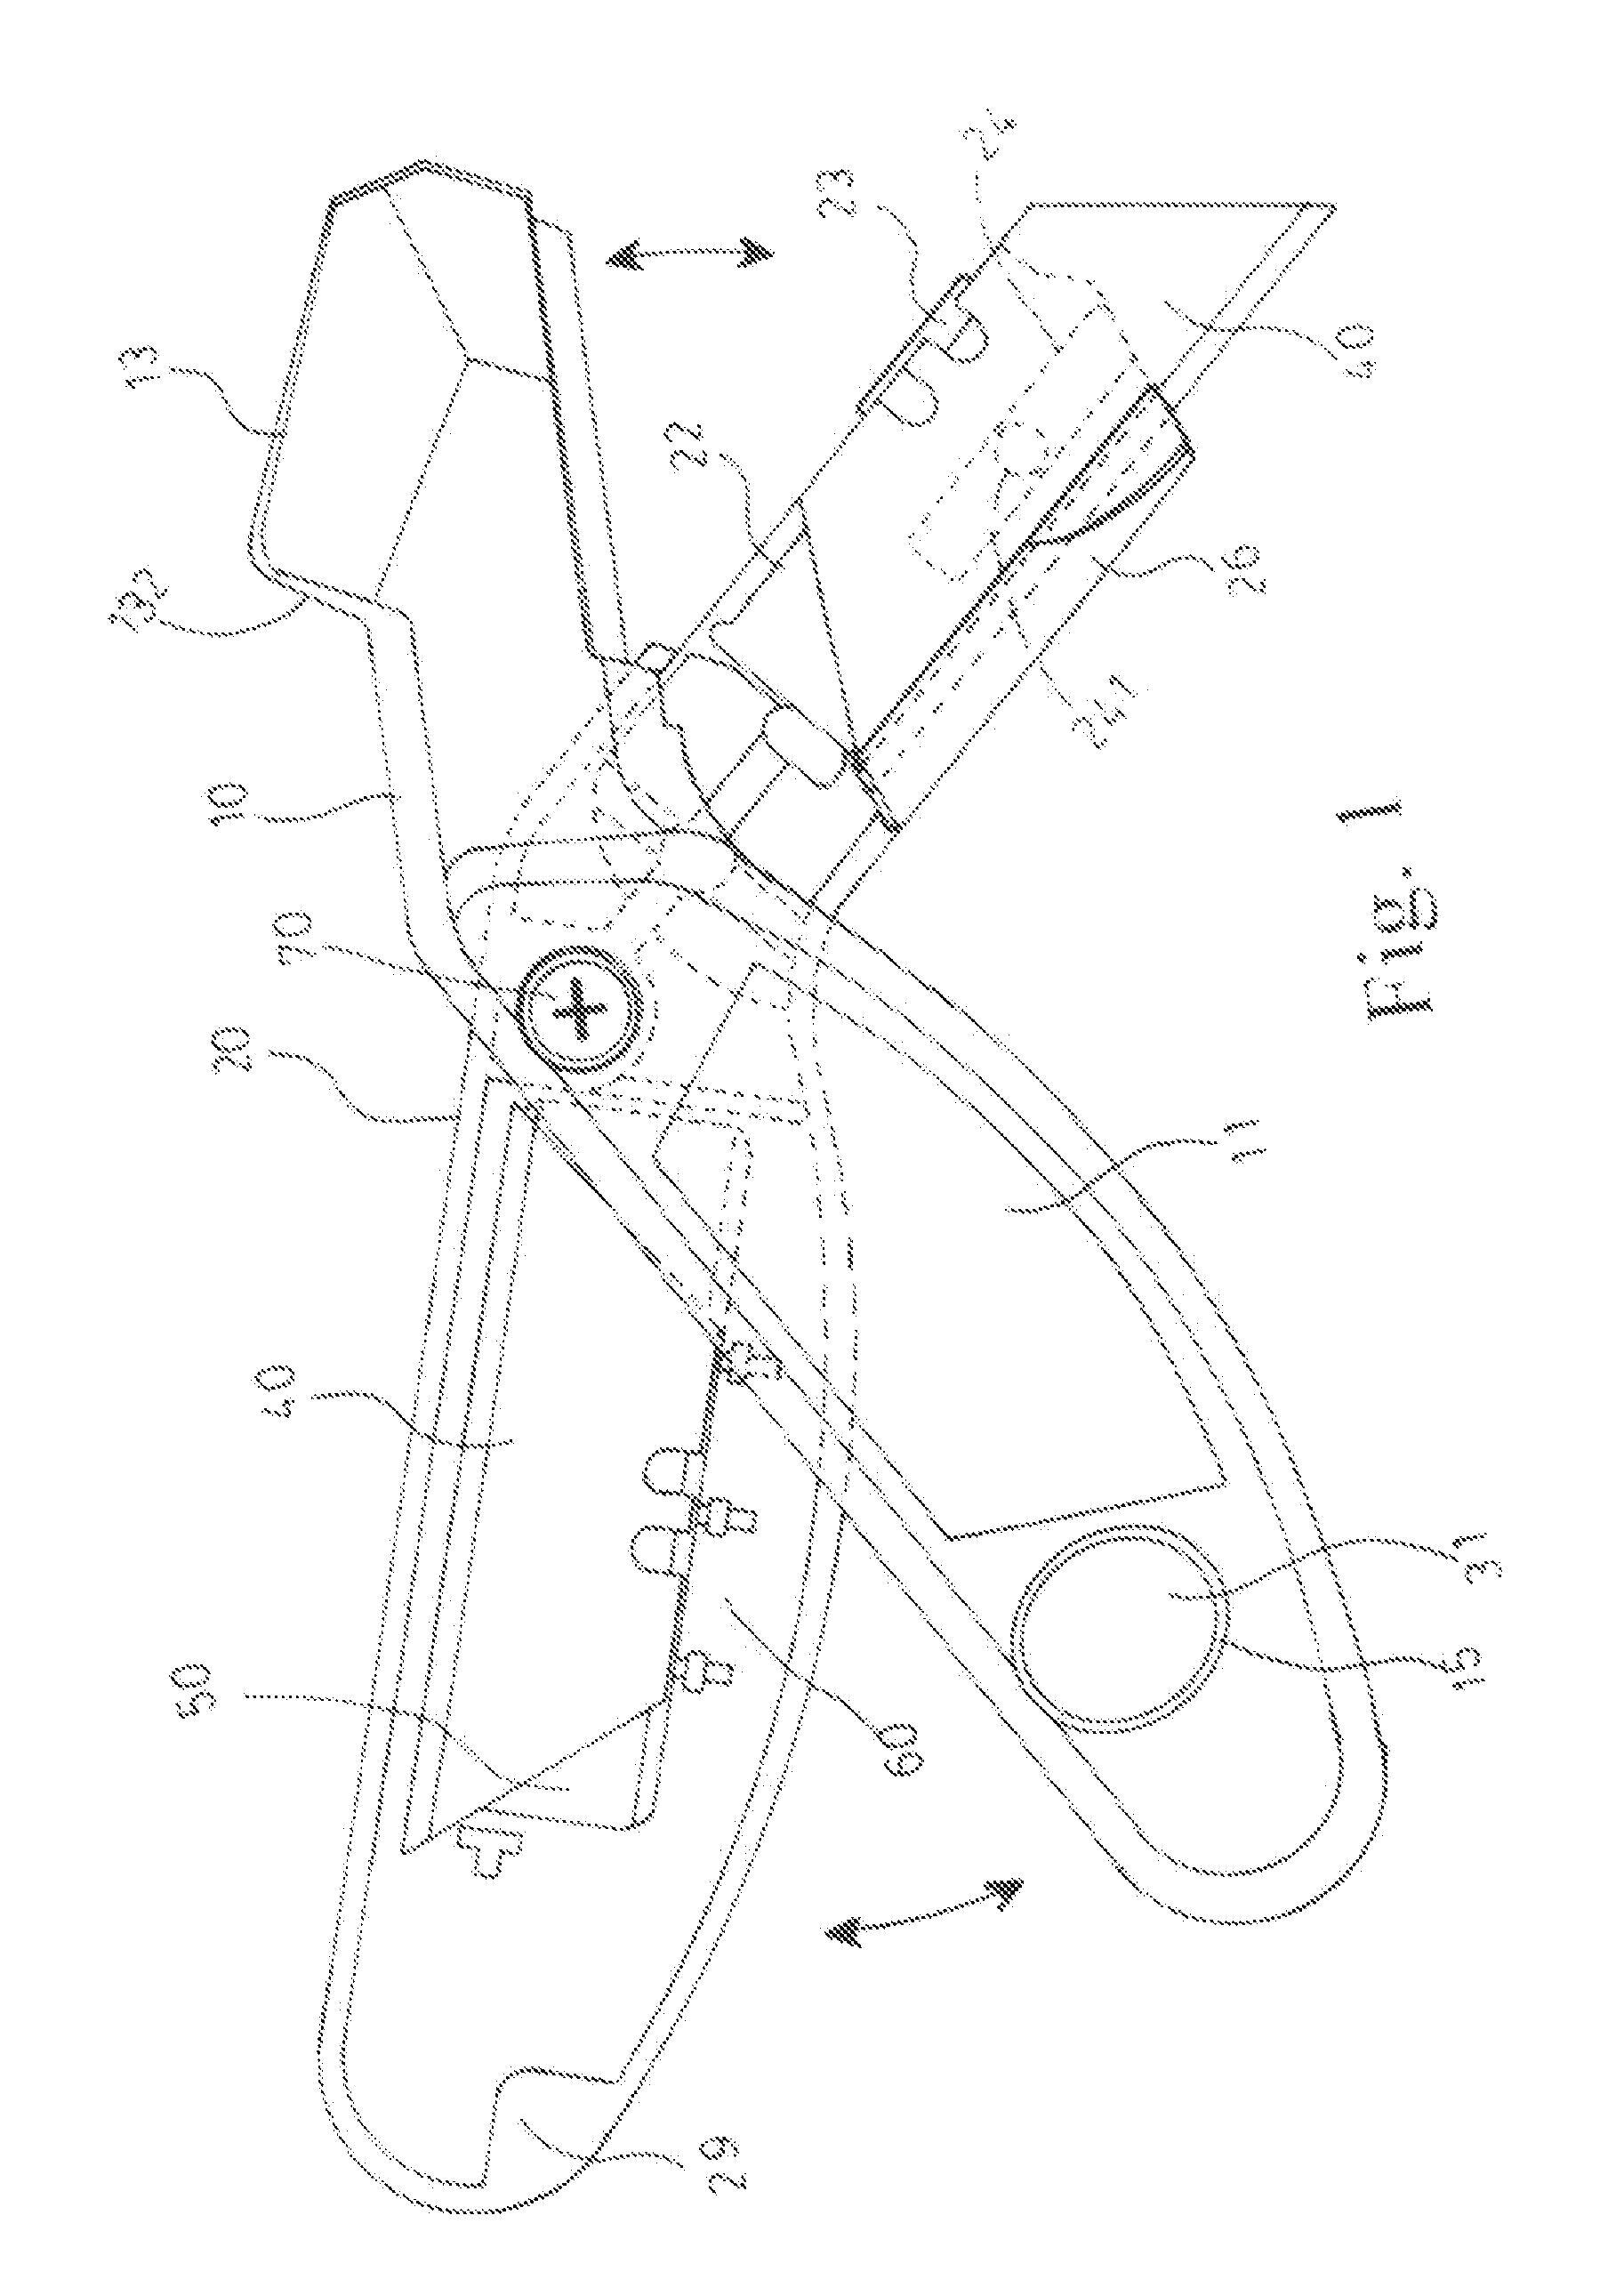 Patent US20110271531 - Opening And Closing Mechanism For Utility Knife - Google Patents